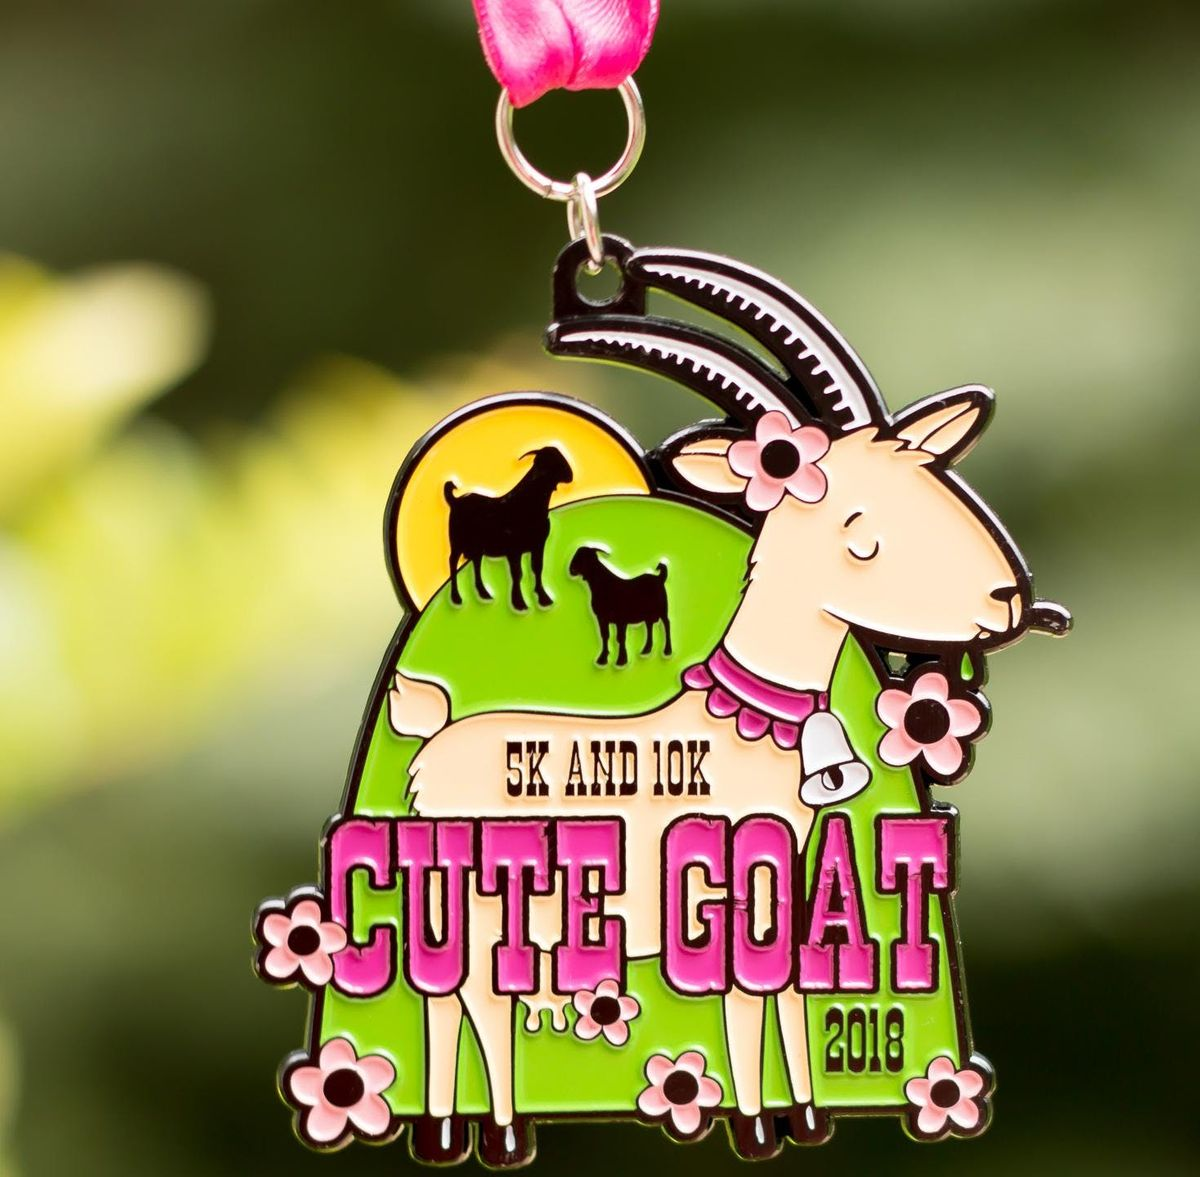 Now Only 10 Cute Goat 5K & 10K - Albany